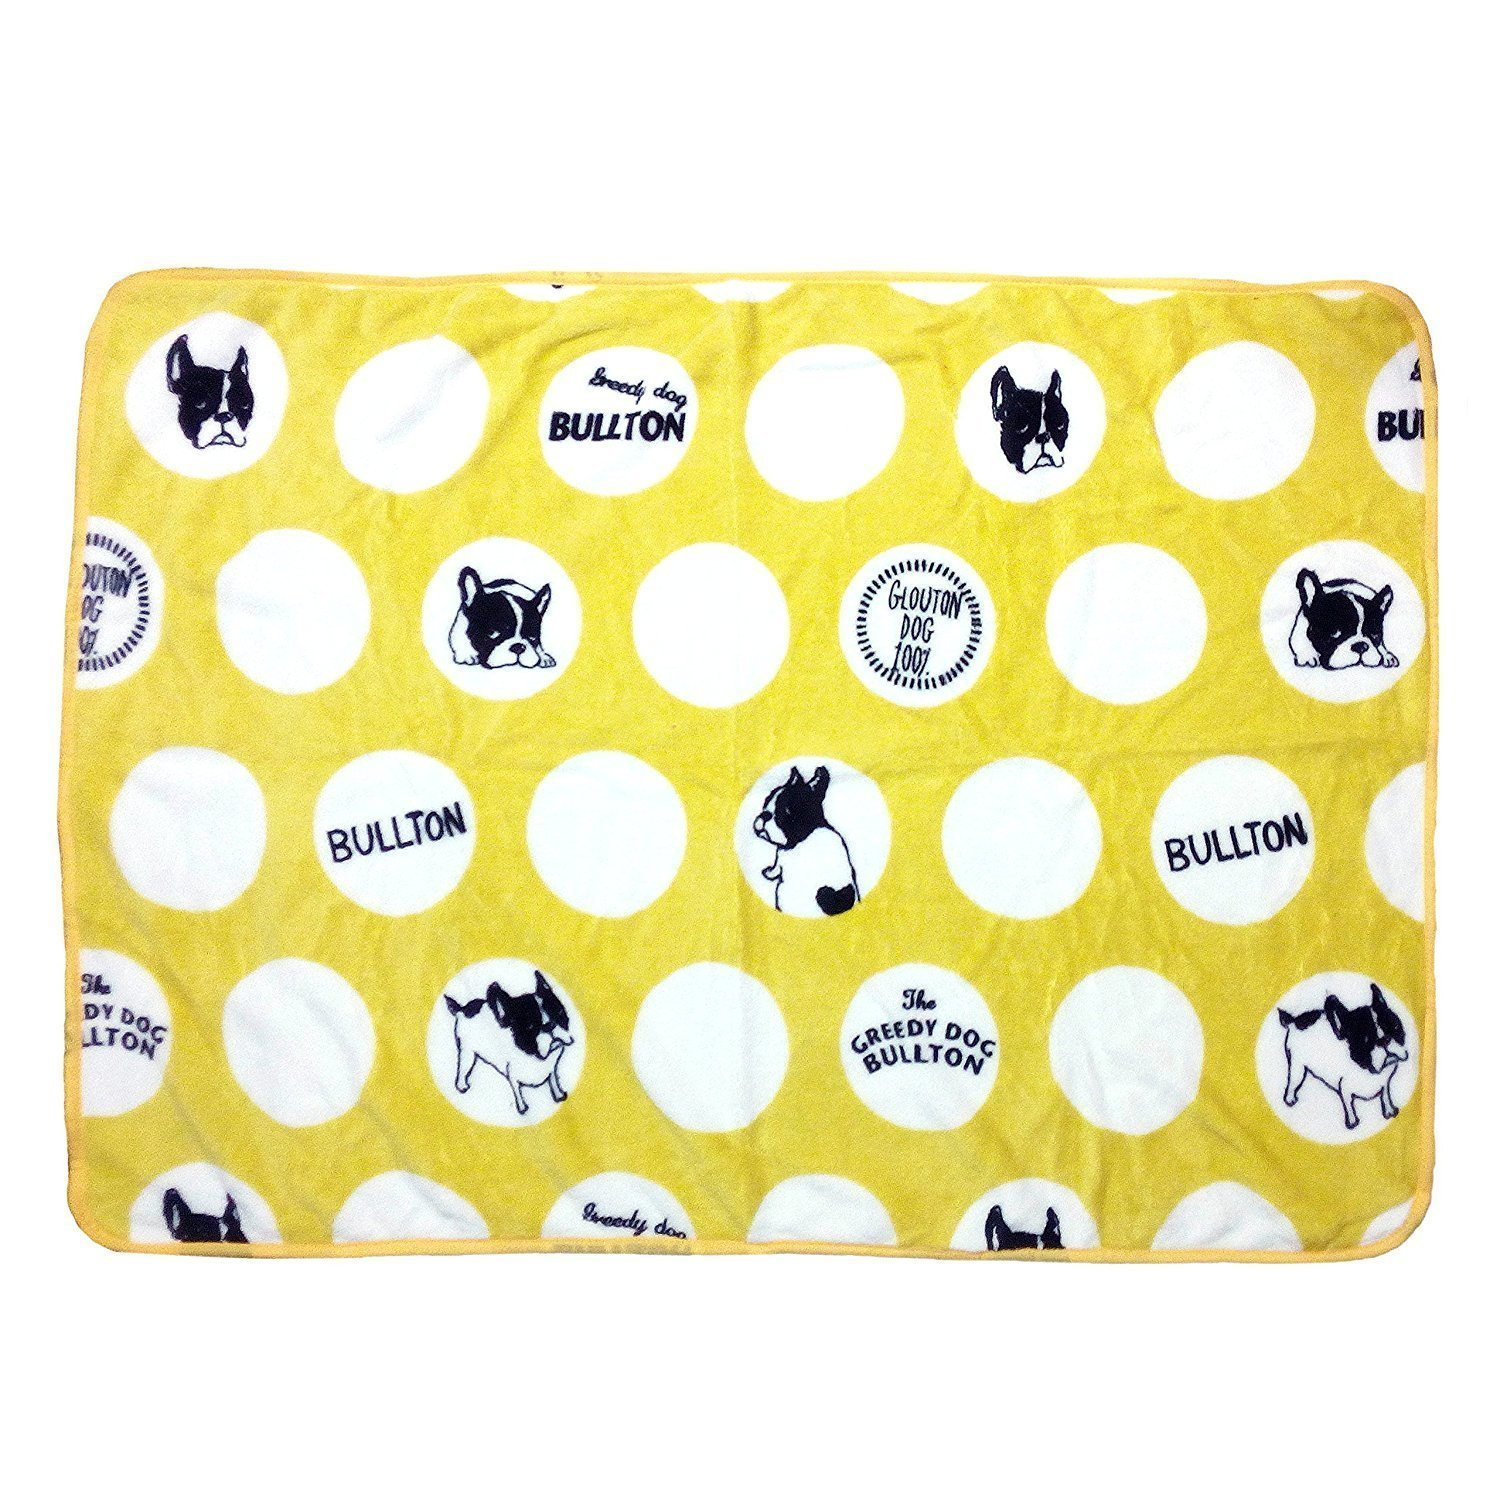 Frenchie French Bulldog Super Soft Fleece YELLOW Pet Bed Blanket by MSFREN (Image #1)